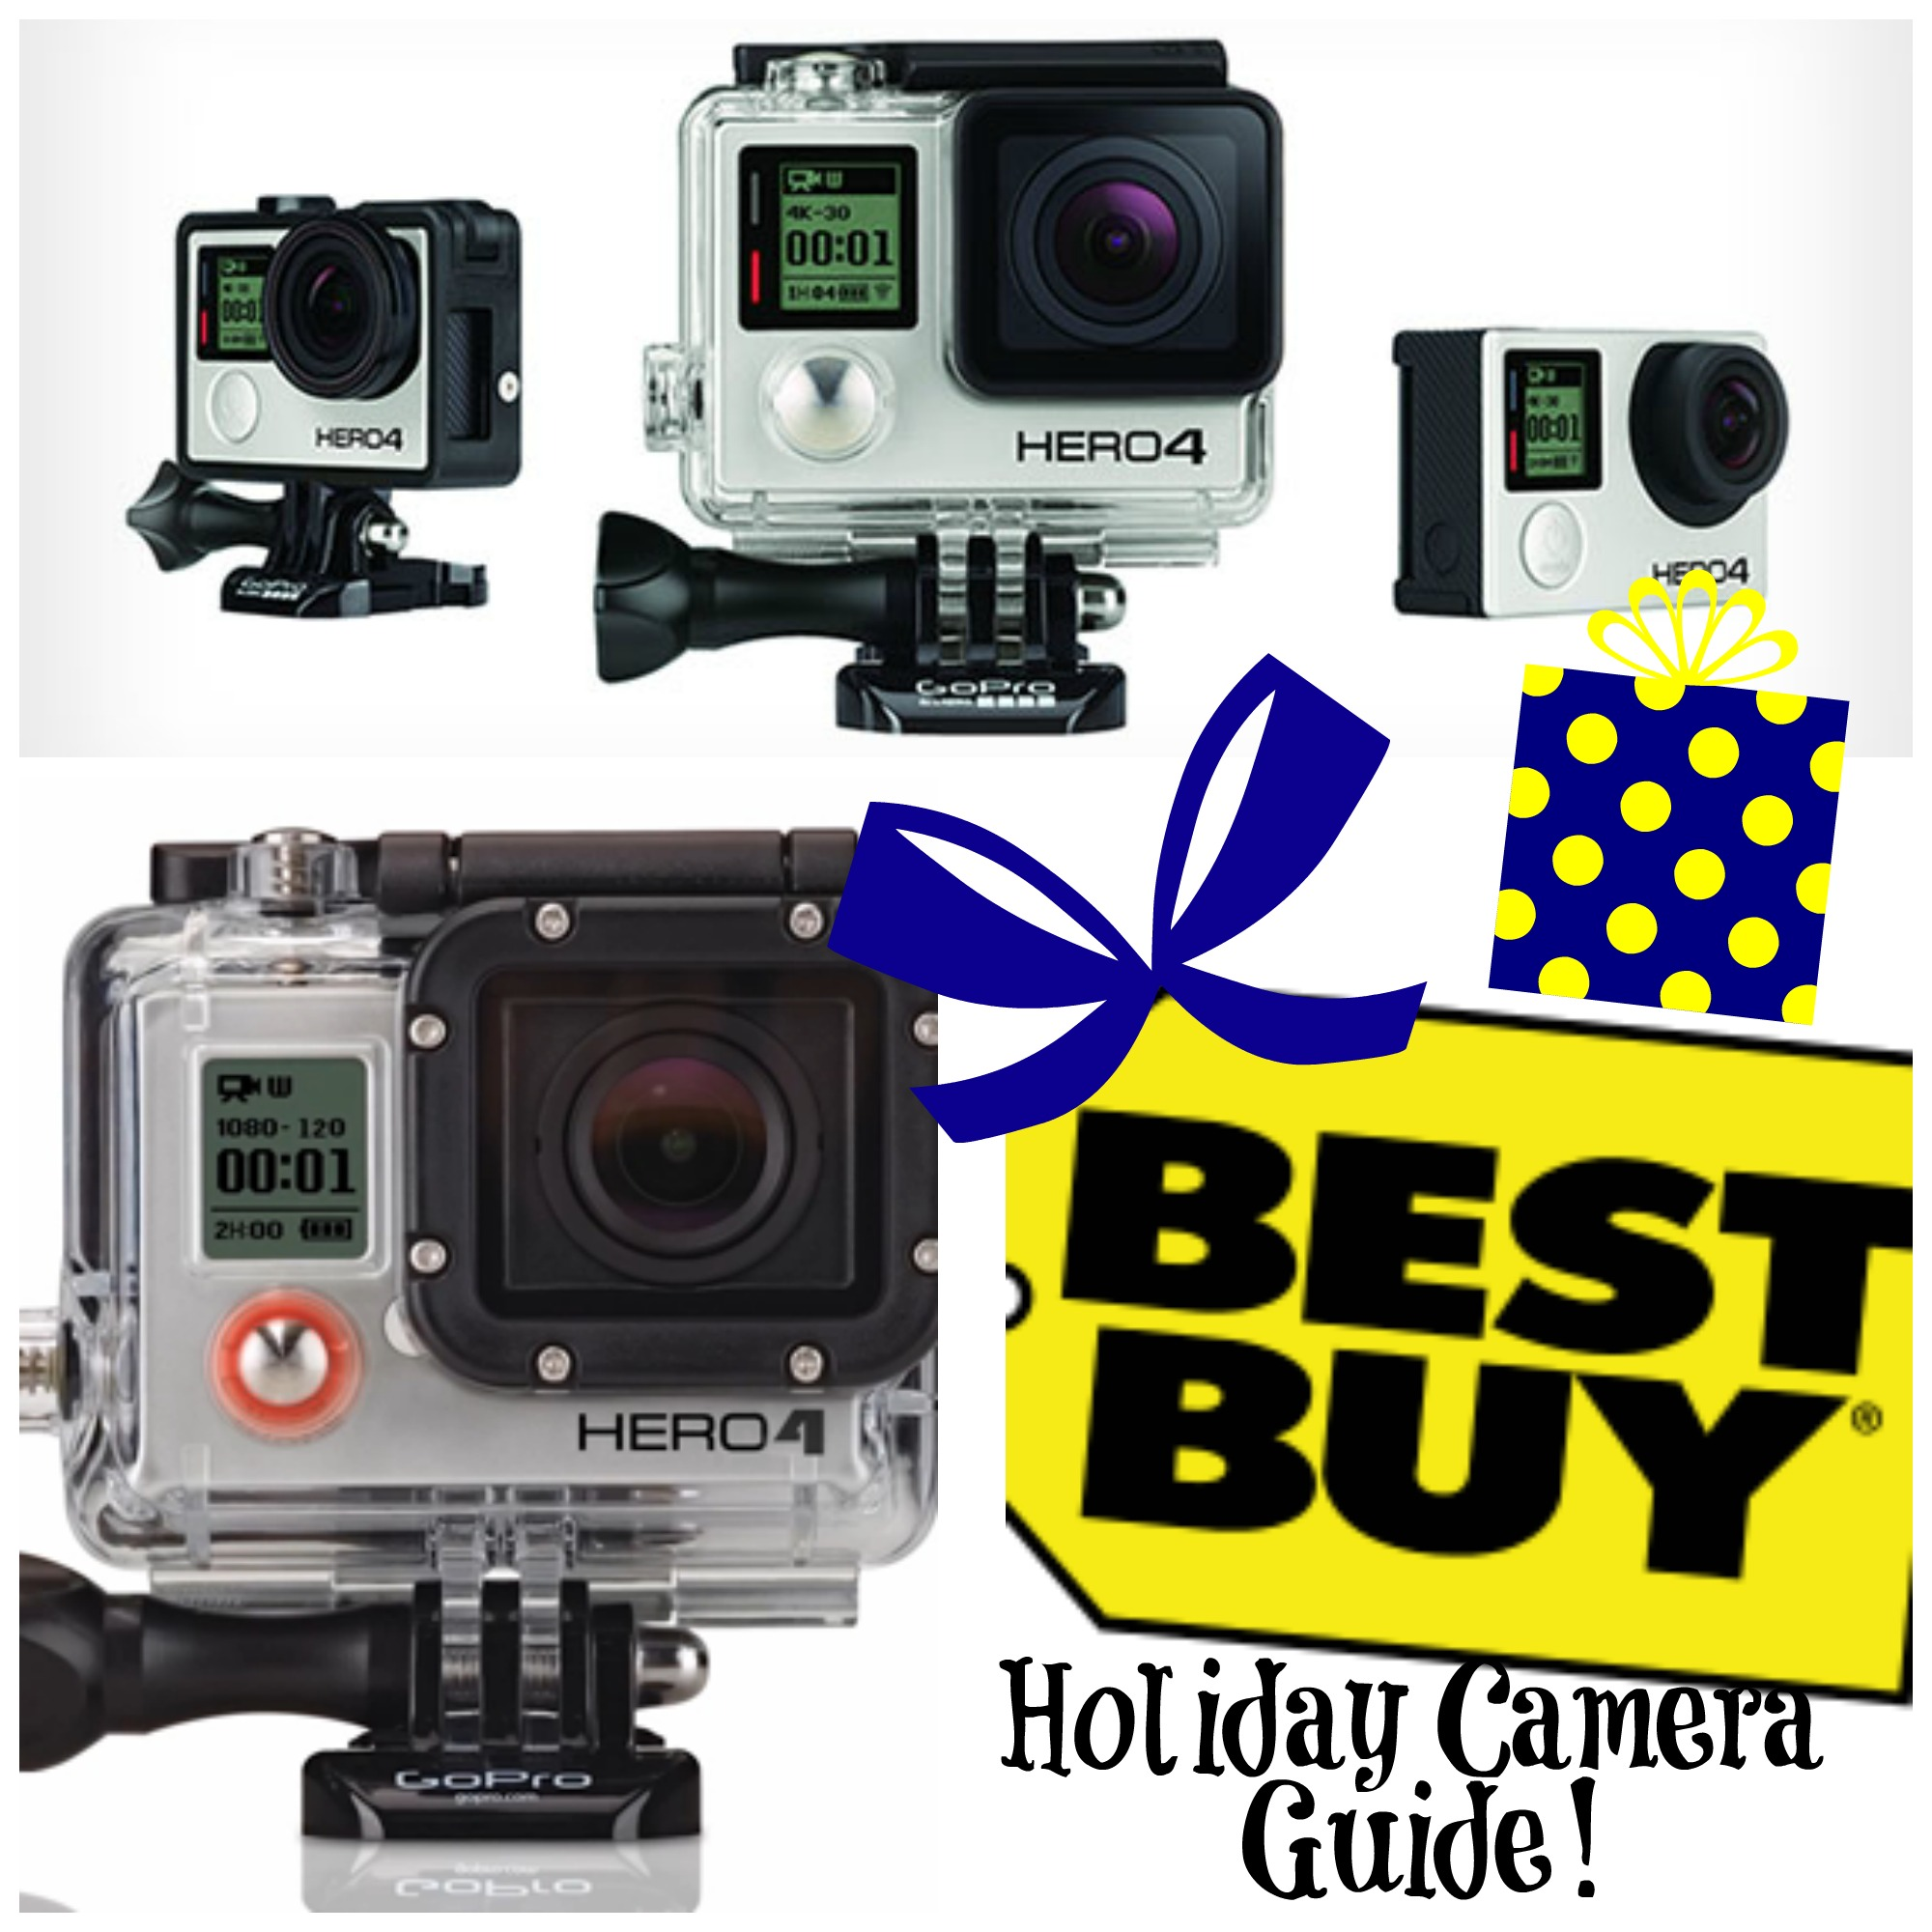 Buy: Best Buy GoPro Camera Holiday Gift Guide!